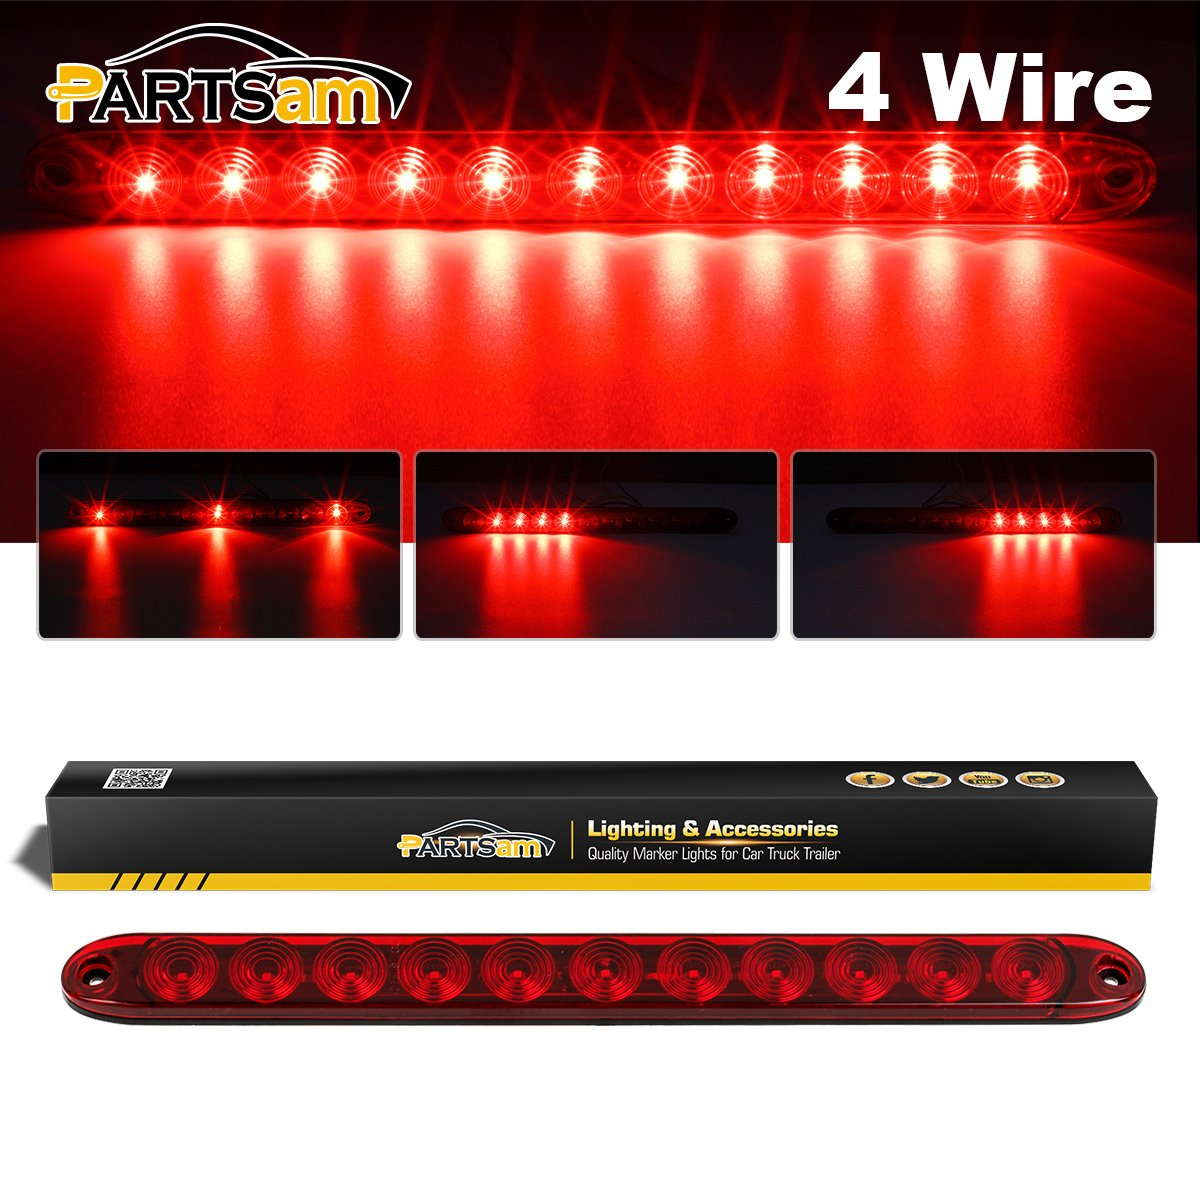 Partsam 15 Red Hi Mount Center ID Bar 11 LED Stop Turn Tail Light Trailer Truck 4 Wires